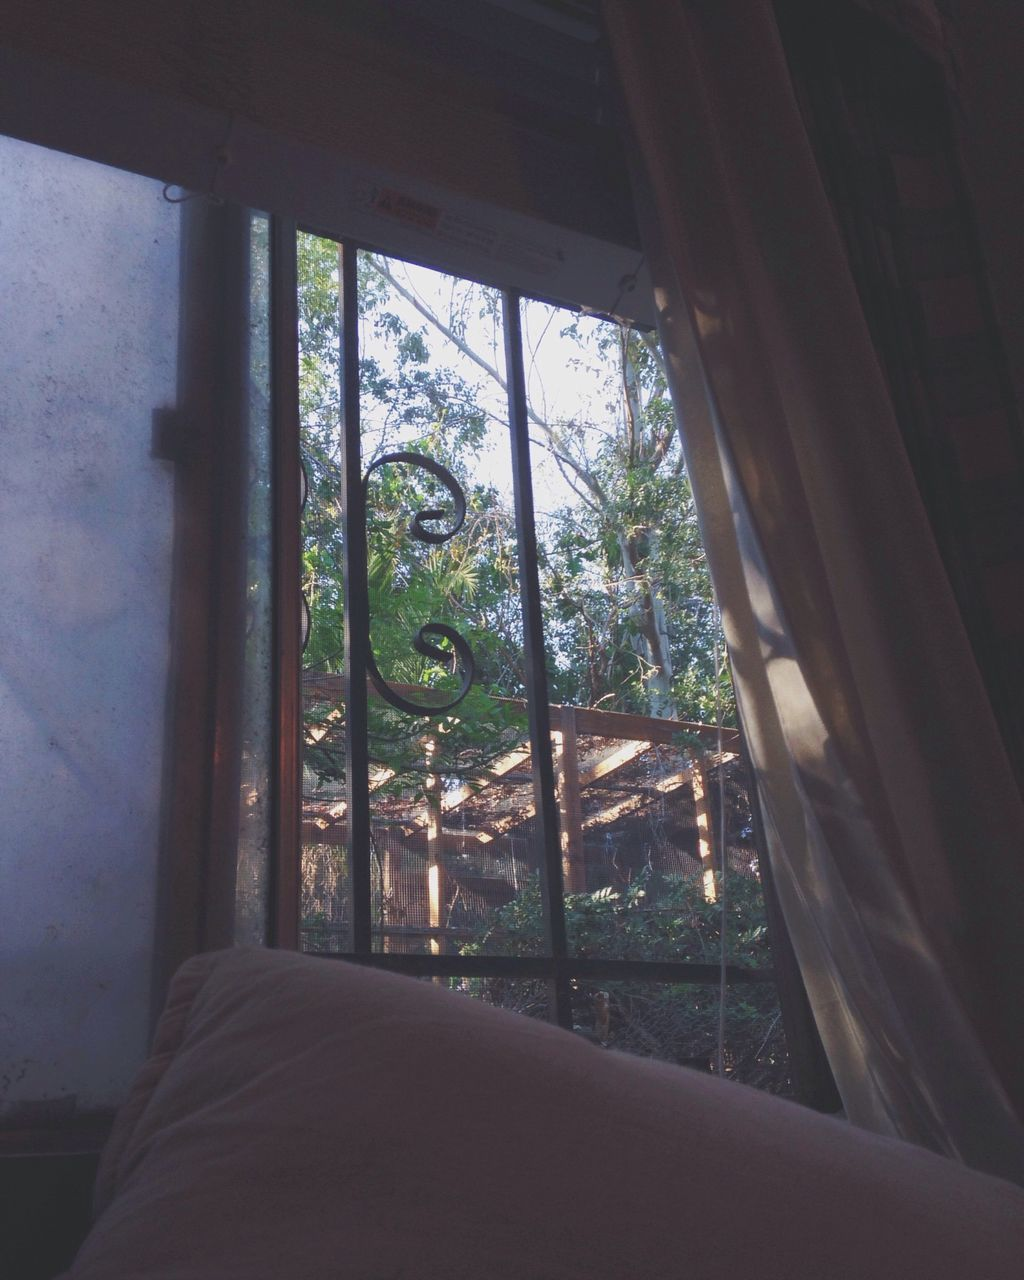 window, indoors, day, no people, tree, home interior, nature, close-up